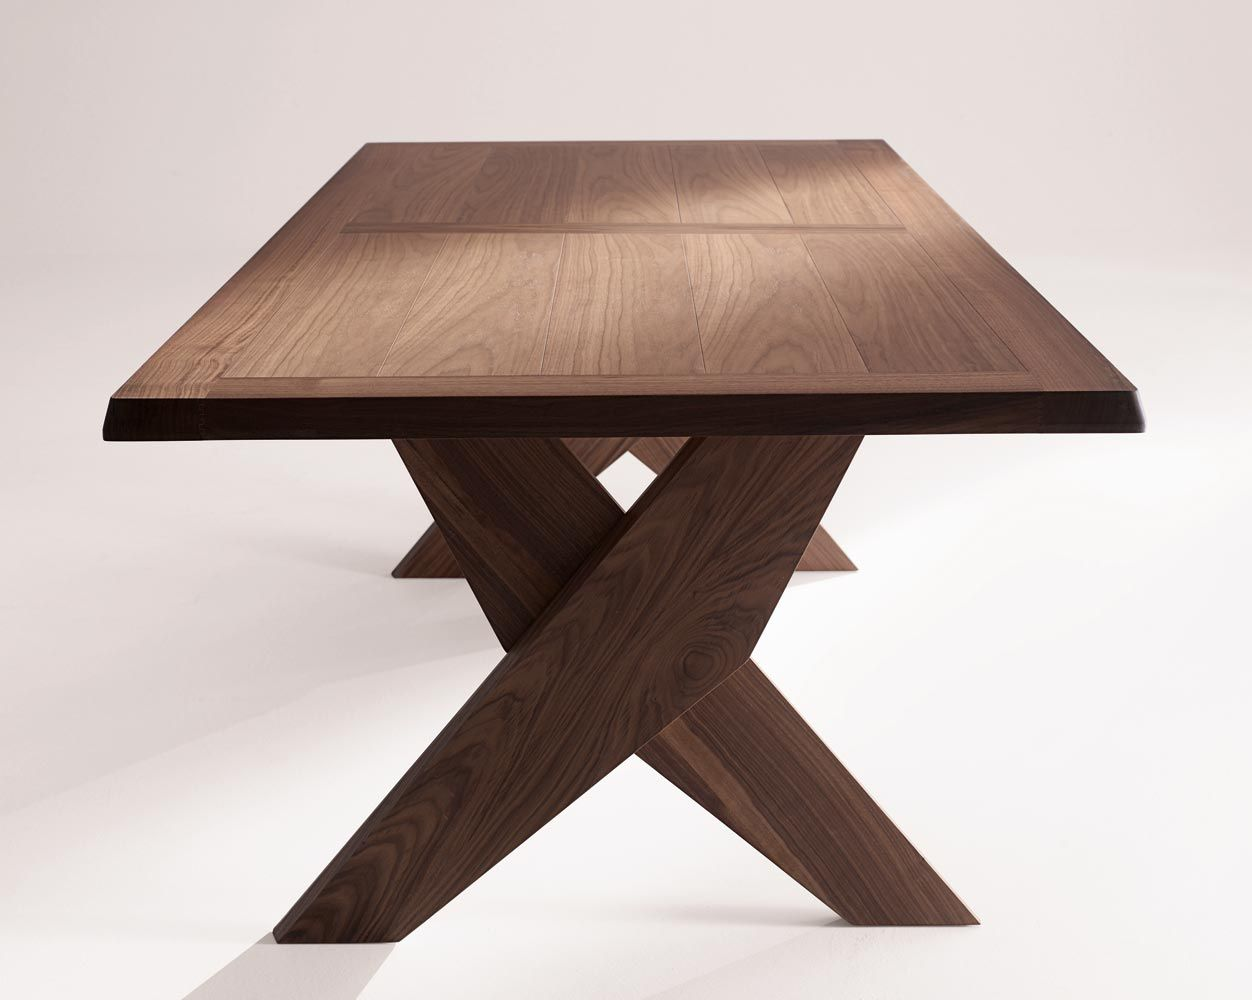 Tavolo Maxalto ~ Plato table by maxalto solid wood dining table captivatist